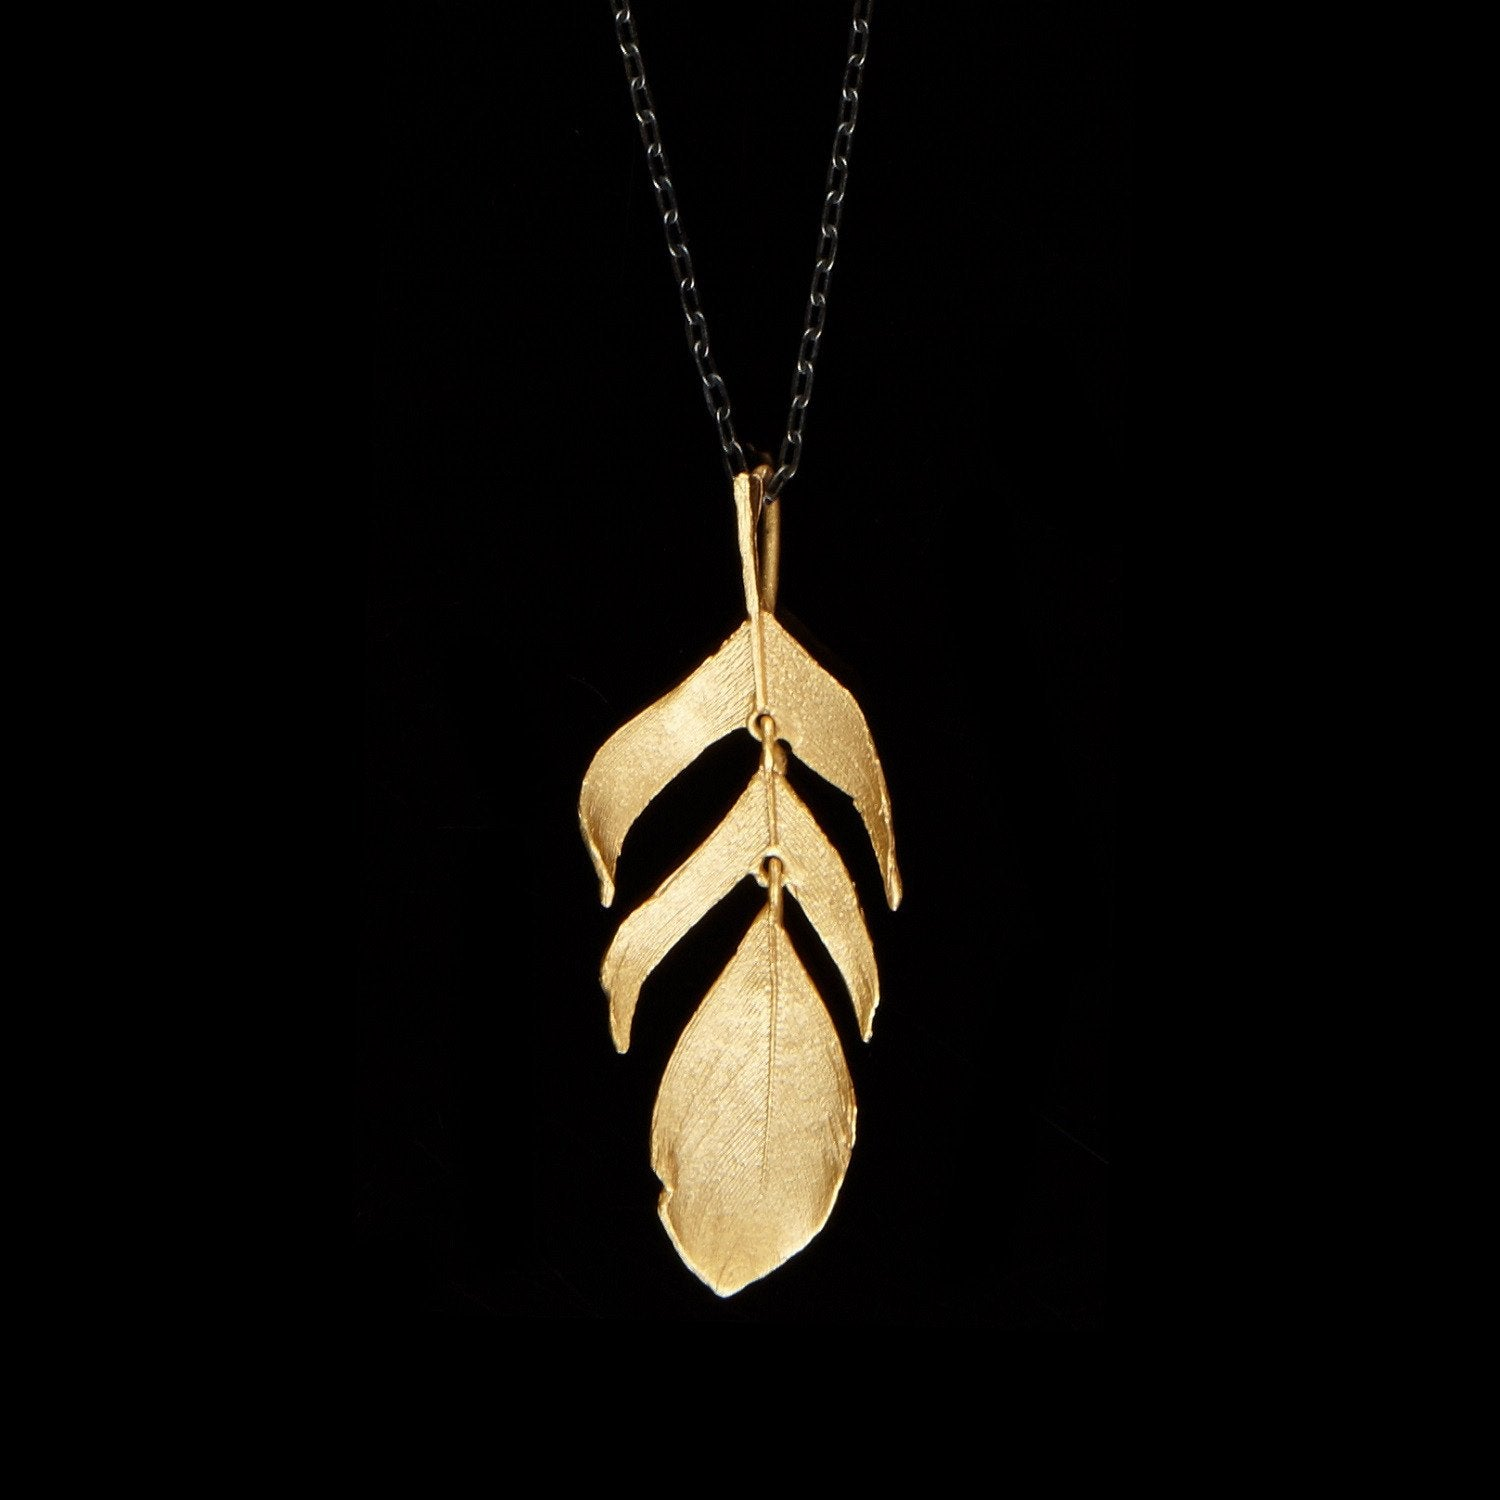 Feather Pendant - 20